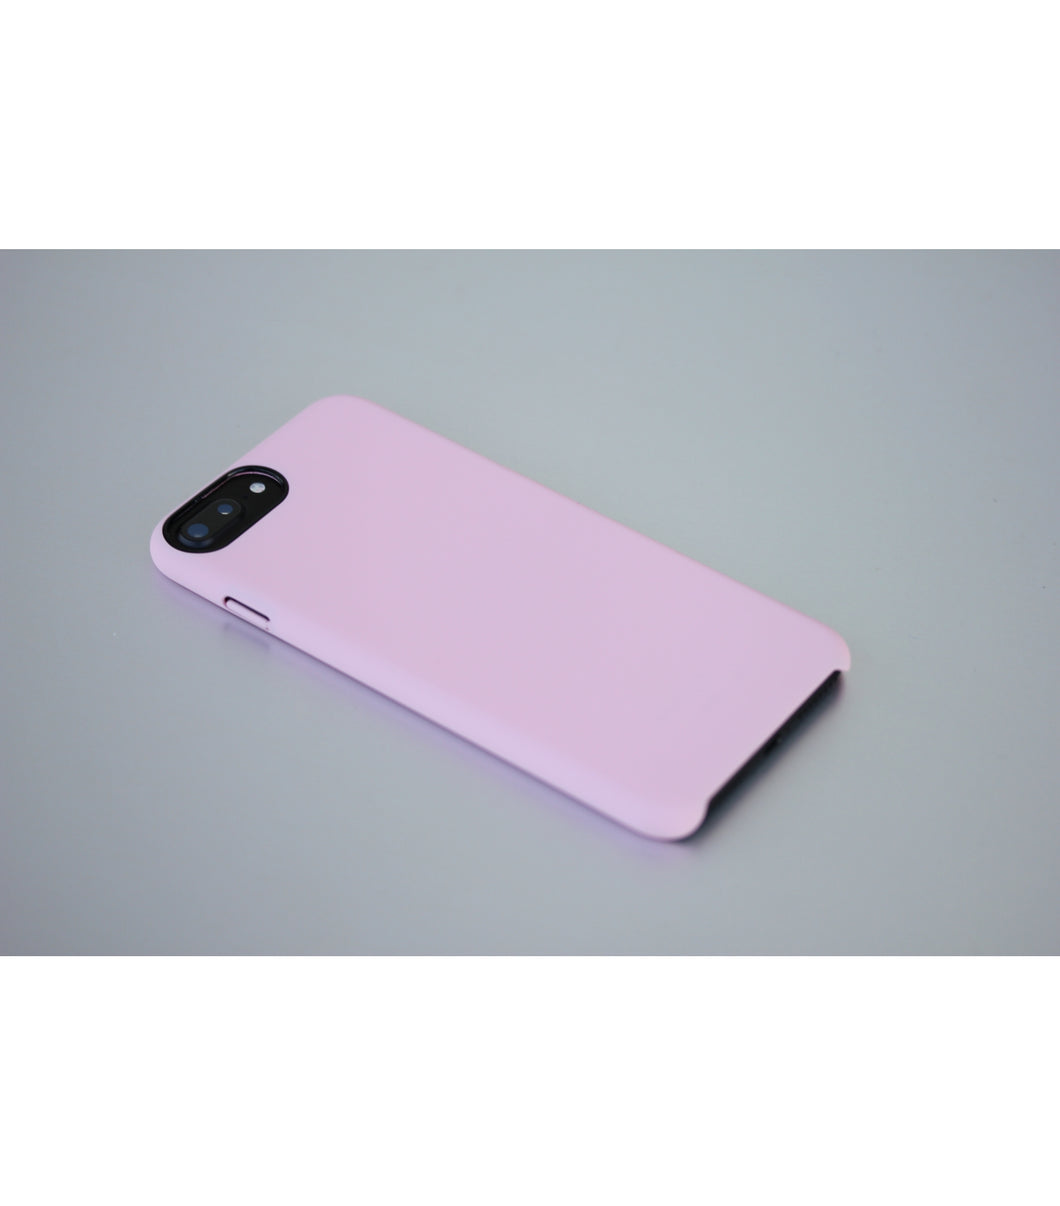 custodia rigida iphone 7 - Custodia cover per iphone|samsung|huawei personalizzata kelisfashion.it